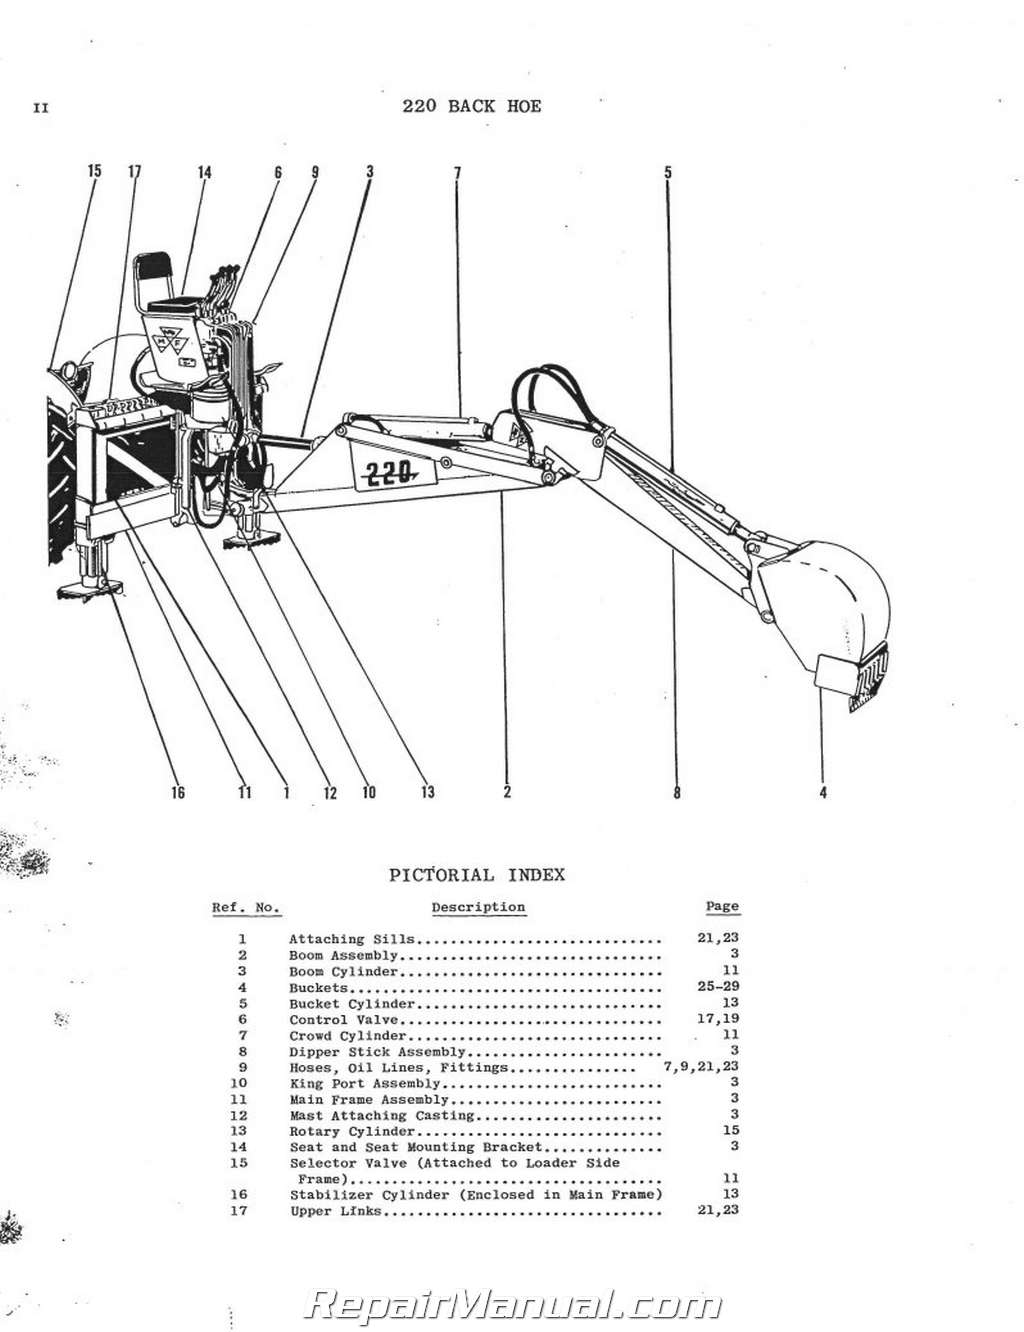 Massey Ferguson MF 220 Industrial Backhoe Parts Manual